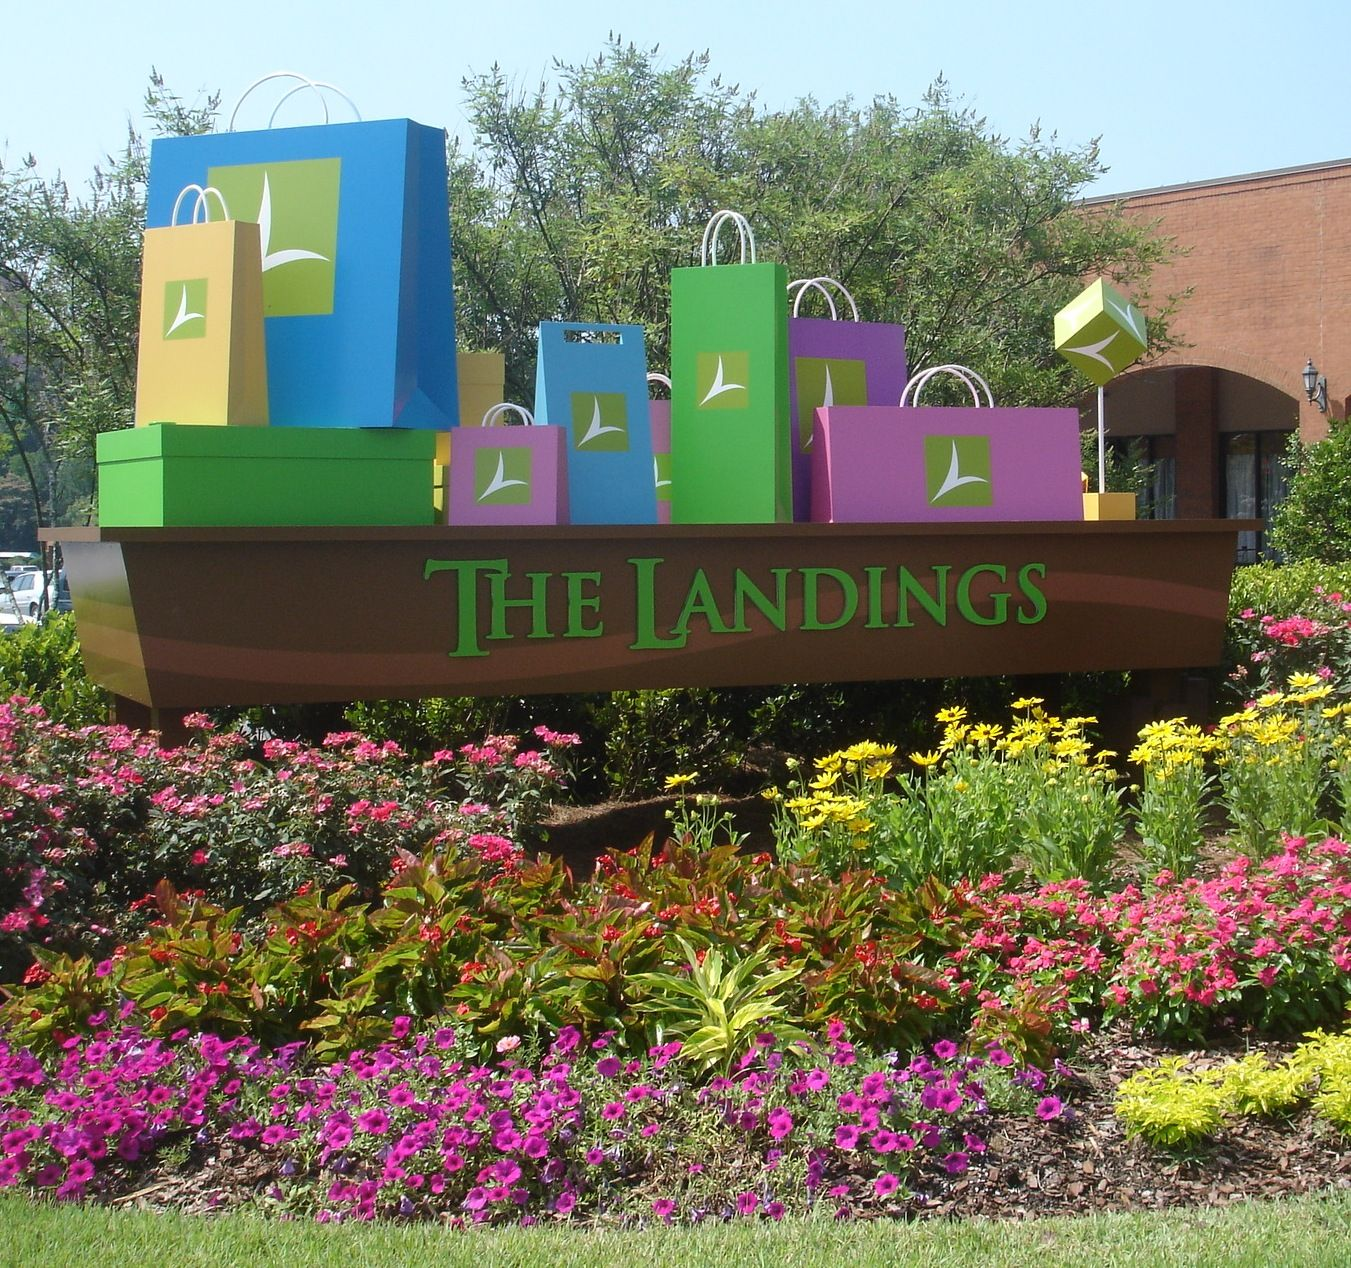 It S All About Fun At The Landings Even The Front Entrance To The Shopping Area Brings A Smile To Your Day Columbus Phenix City Fort Benning